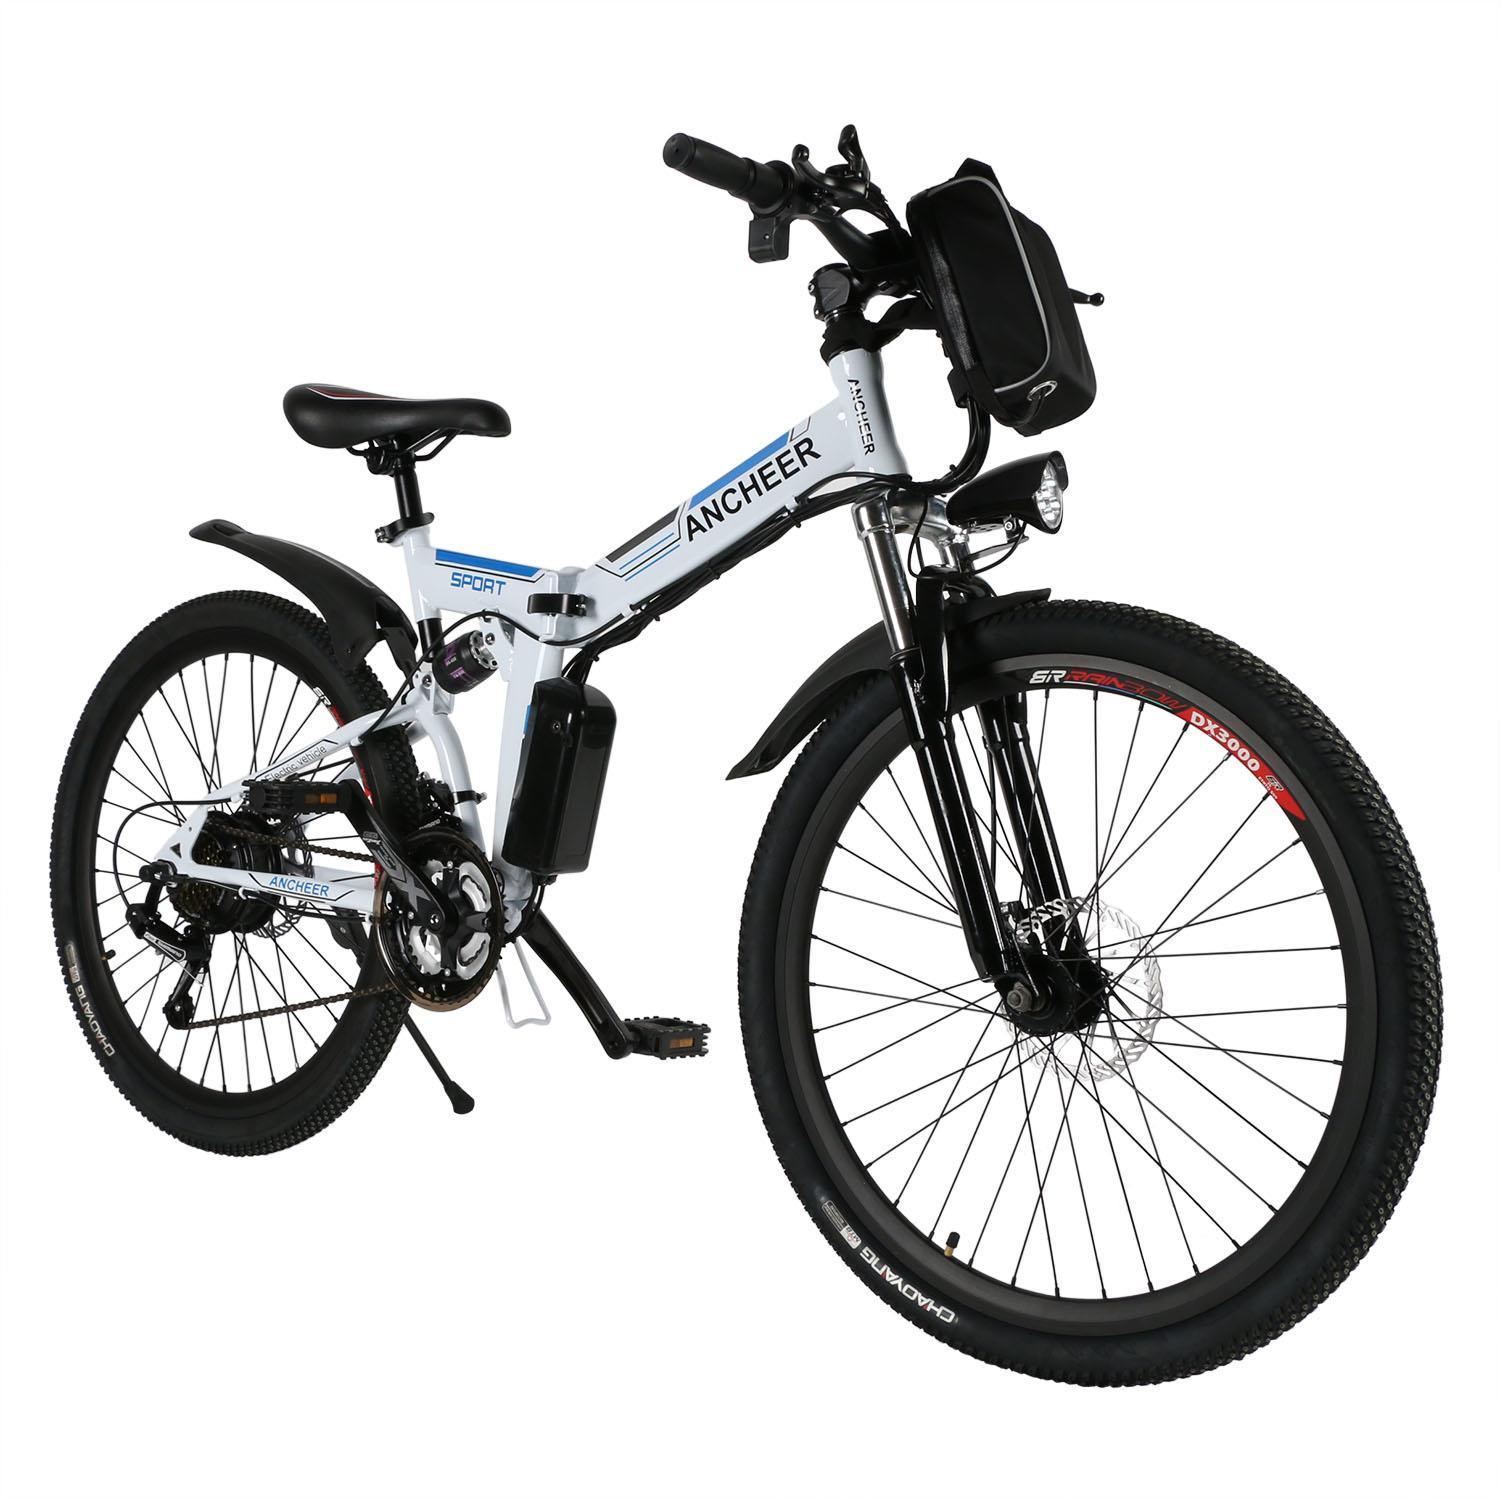 "ANCHEER E-bike 21"" Folding Electric Mountain Bike Power Plus Bicycle Damping with Lithium-Ion Battery  CEAER"